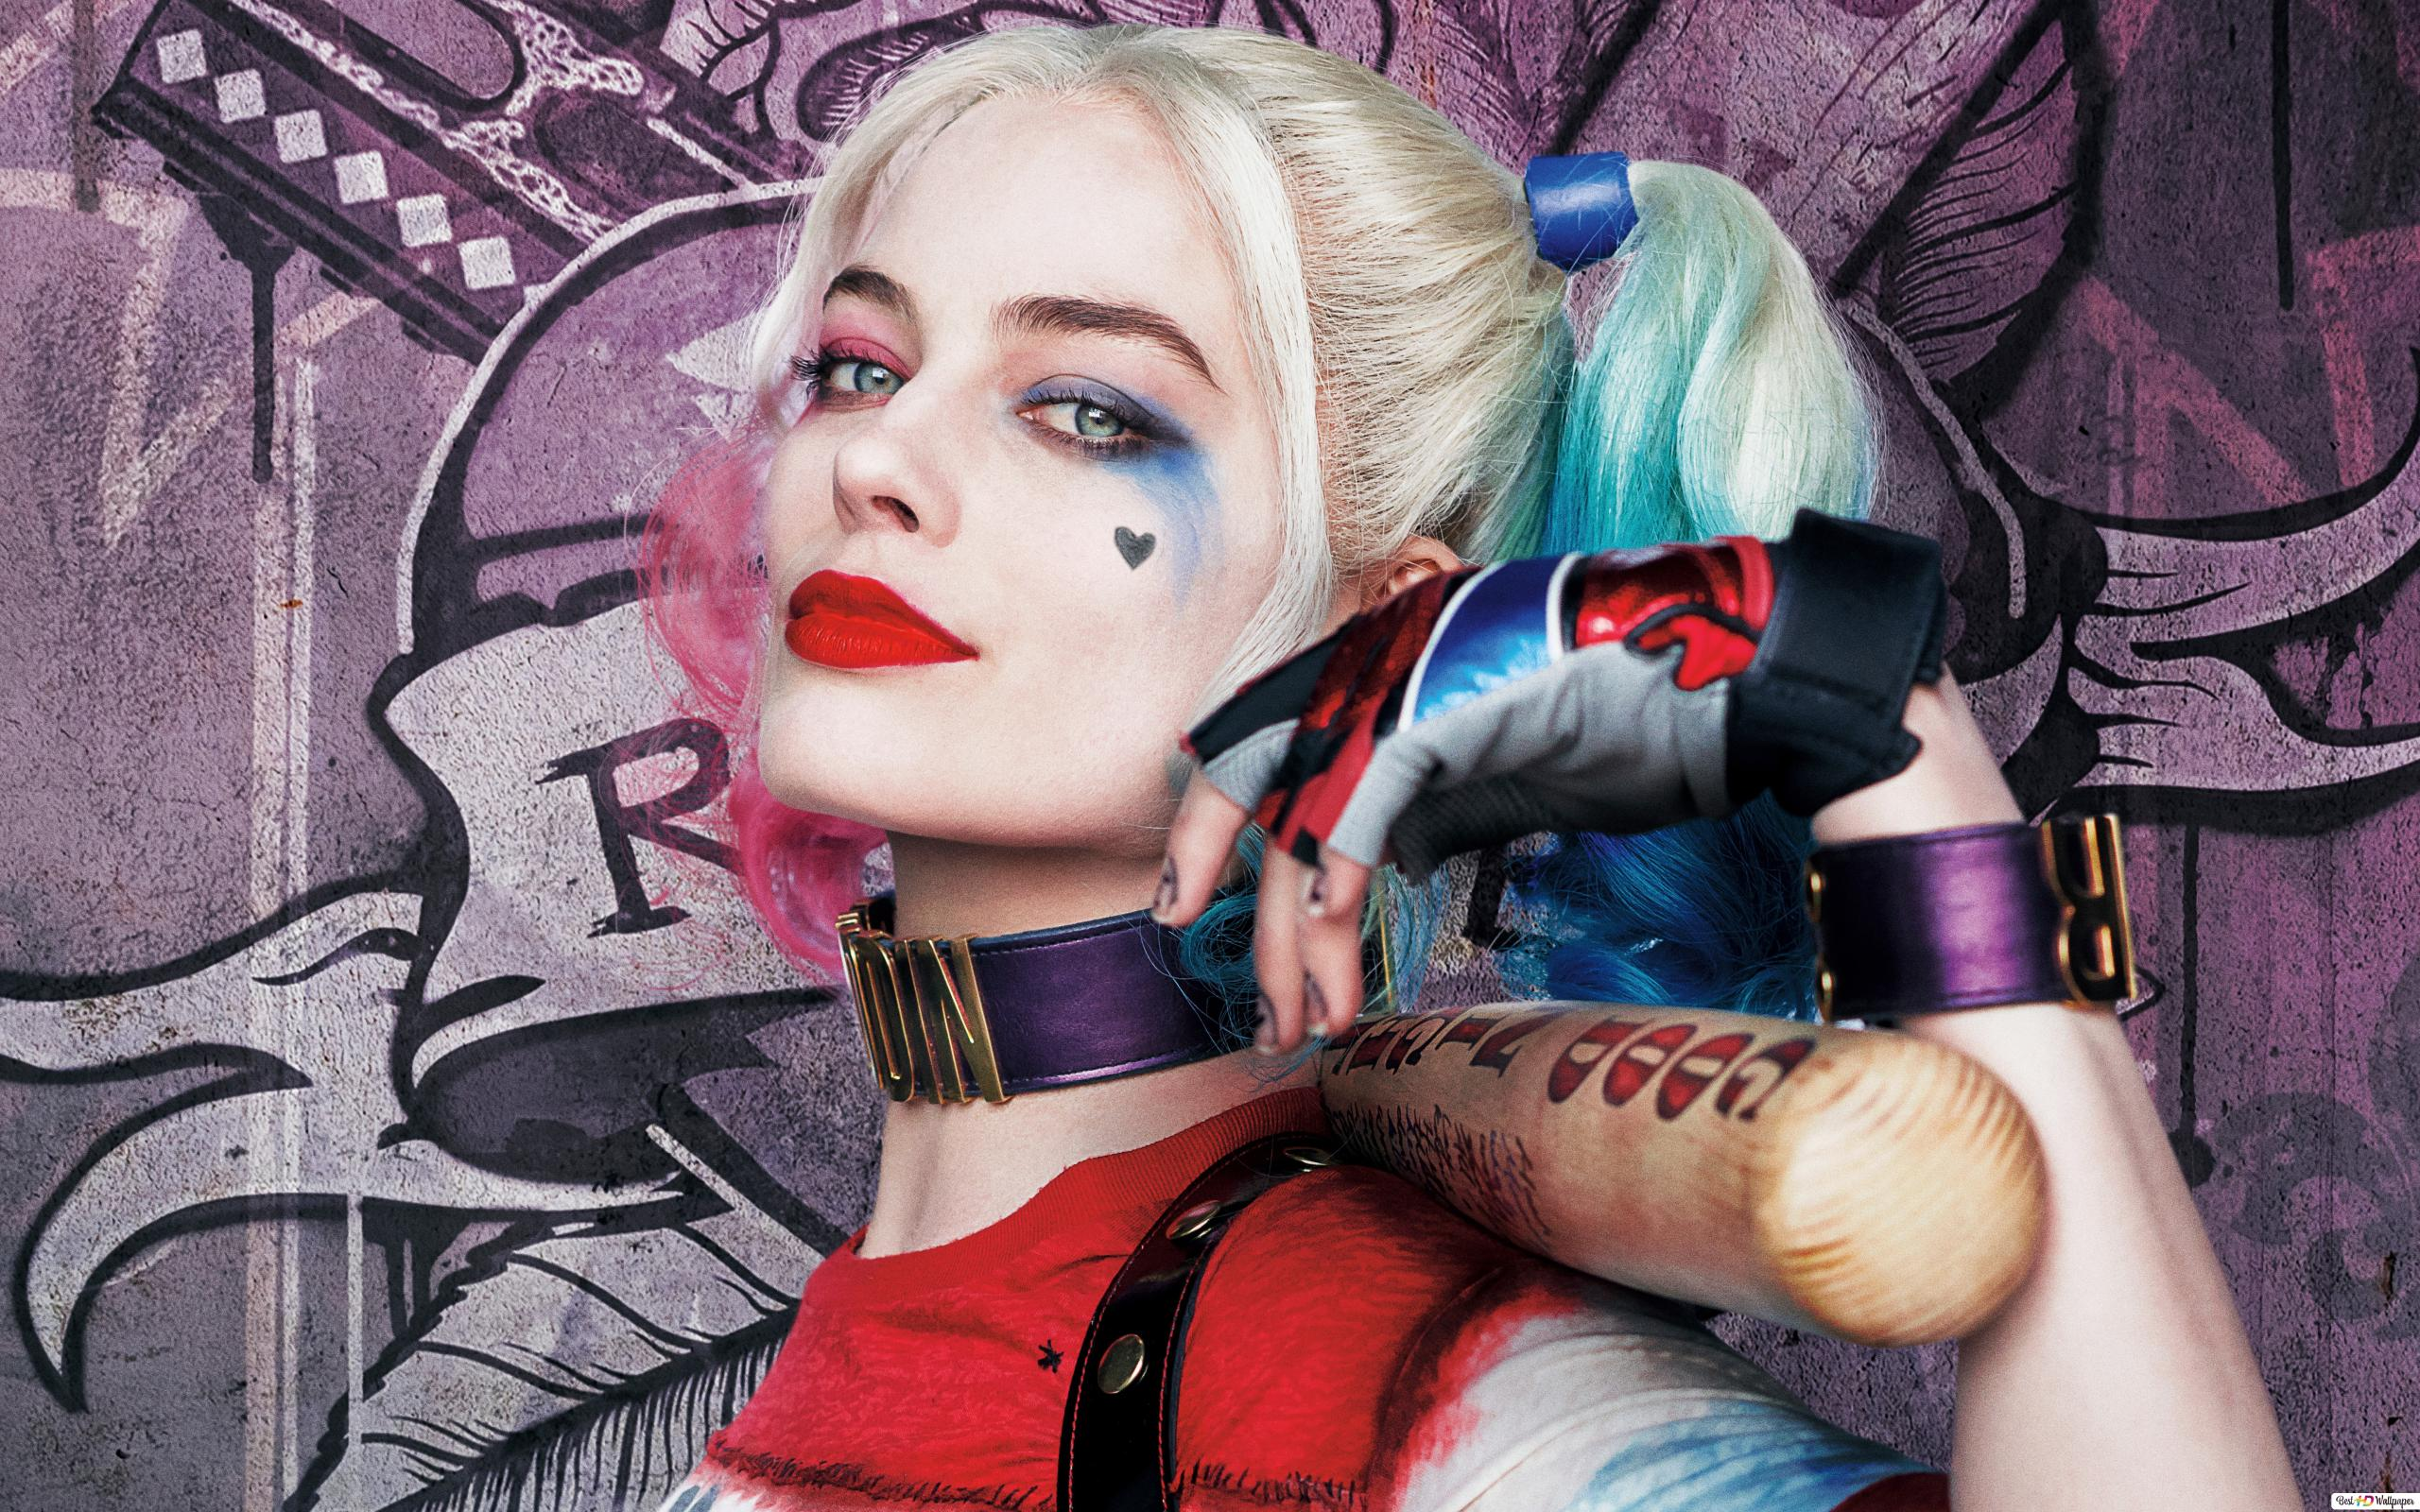 Suicide Squad Harley Quinn Hd Wallpaper Download